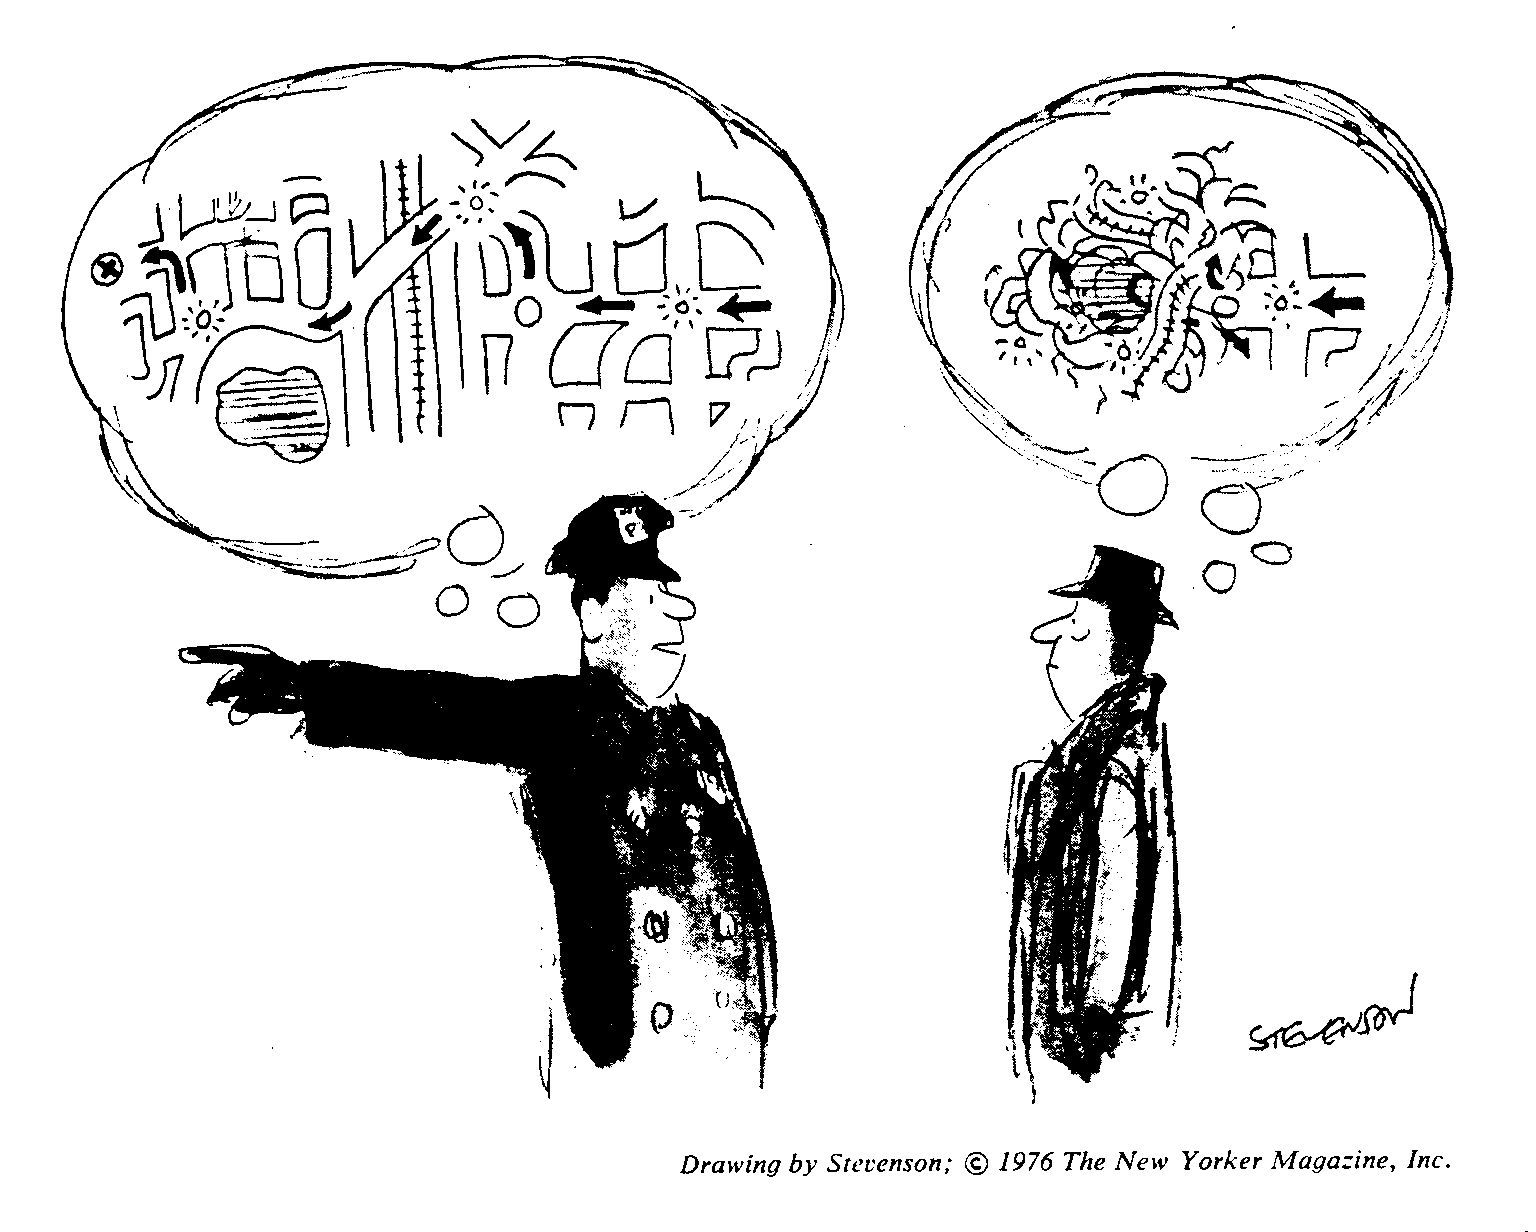 cartoon of police officer giving directions with two diferent